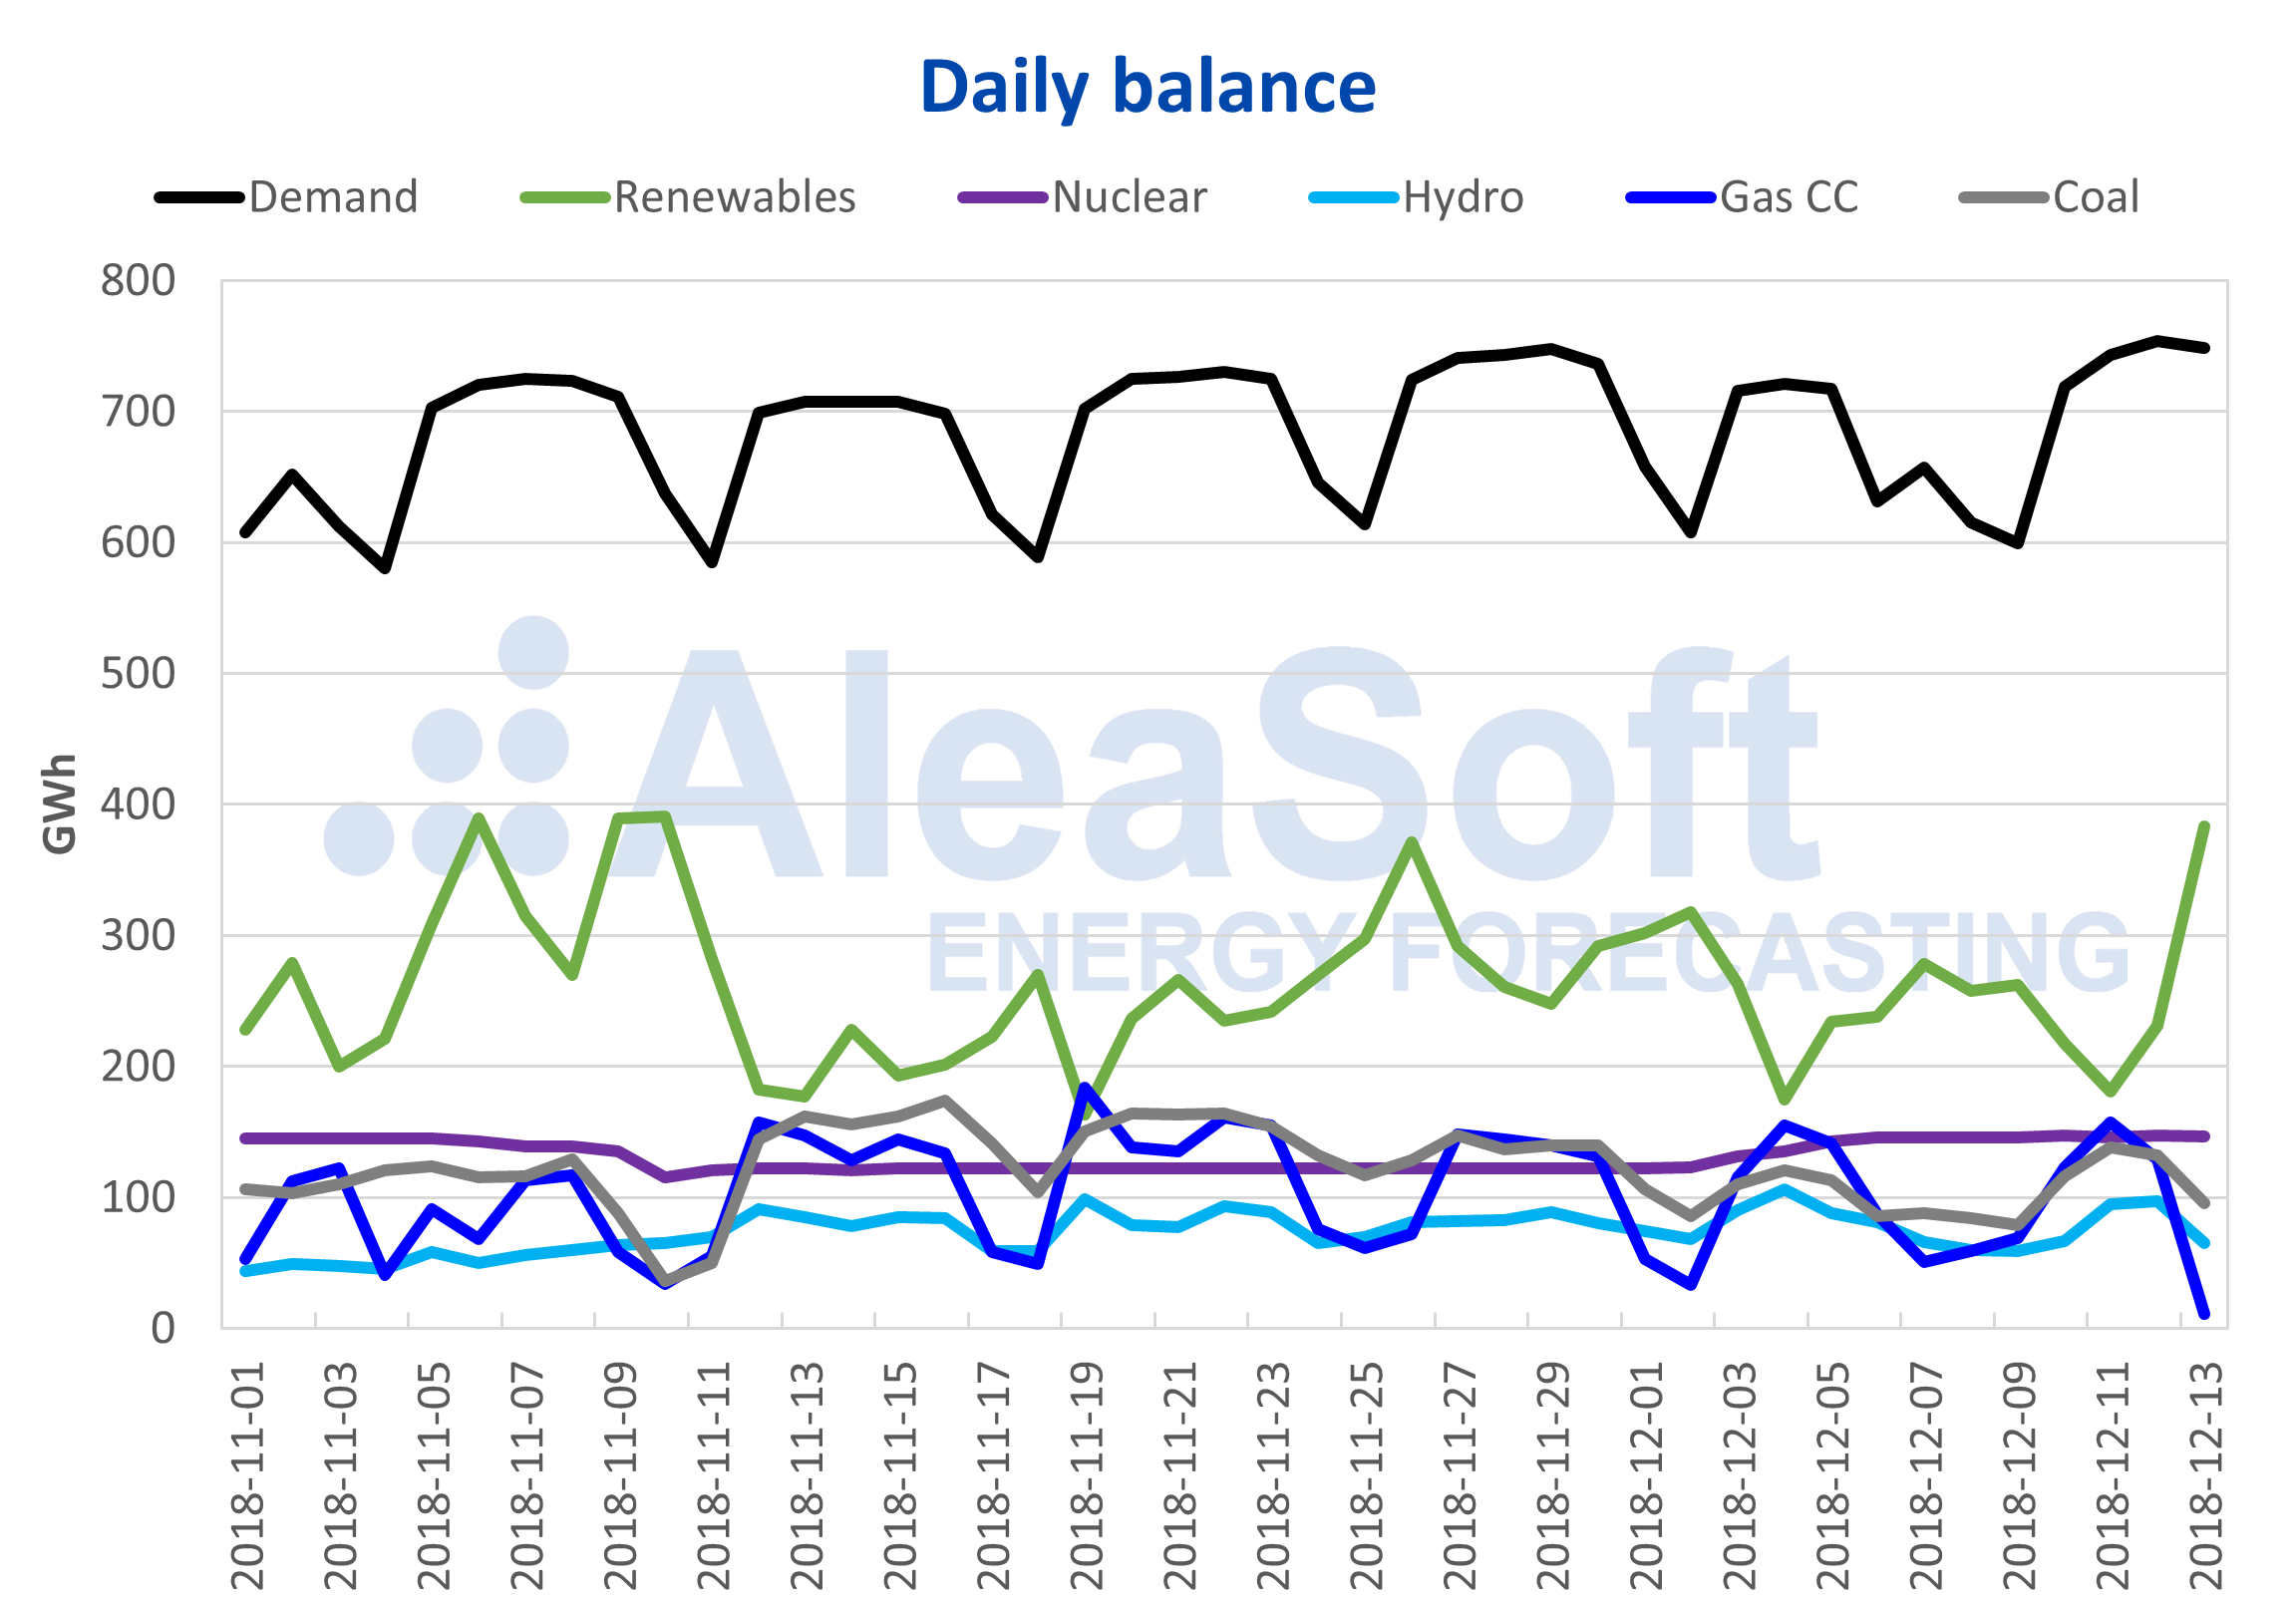 AleaSoft - Daily balance electricity Spain demand-production